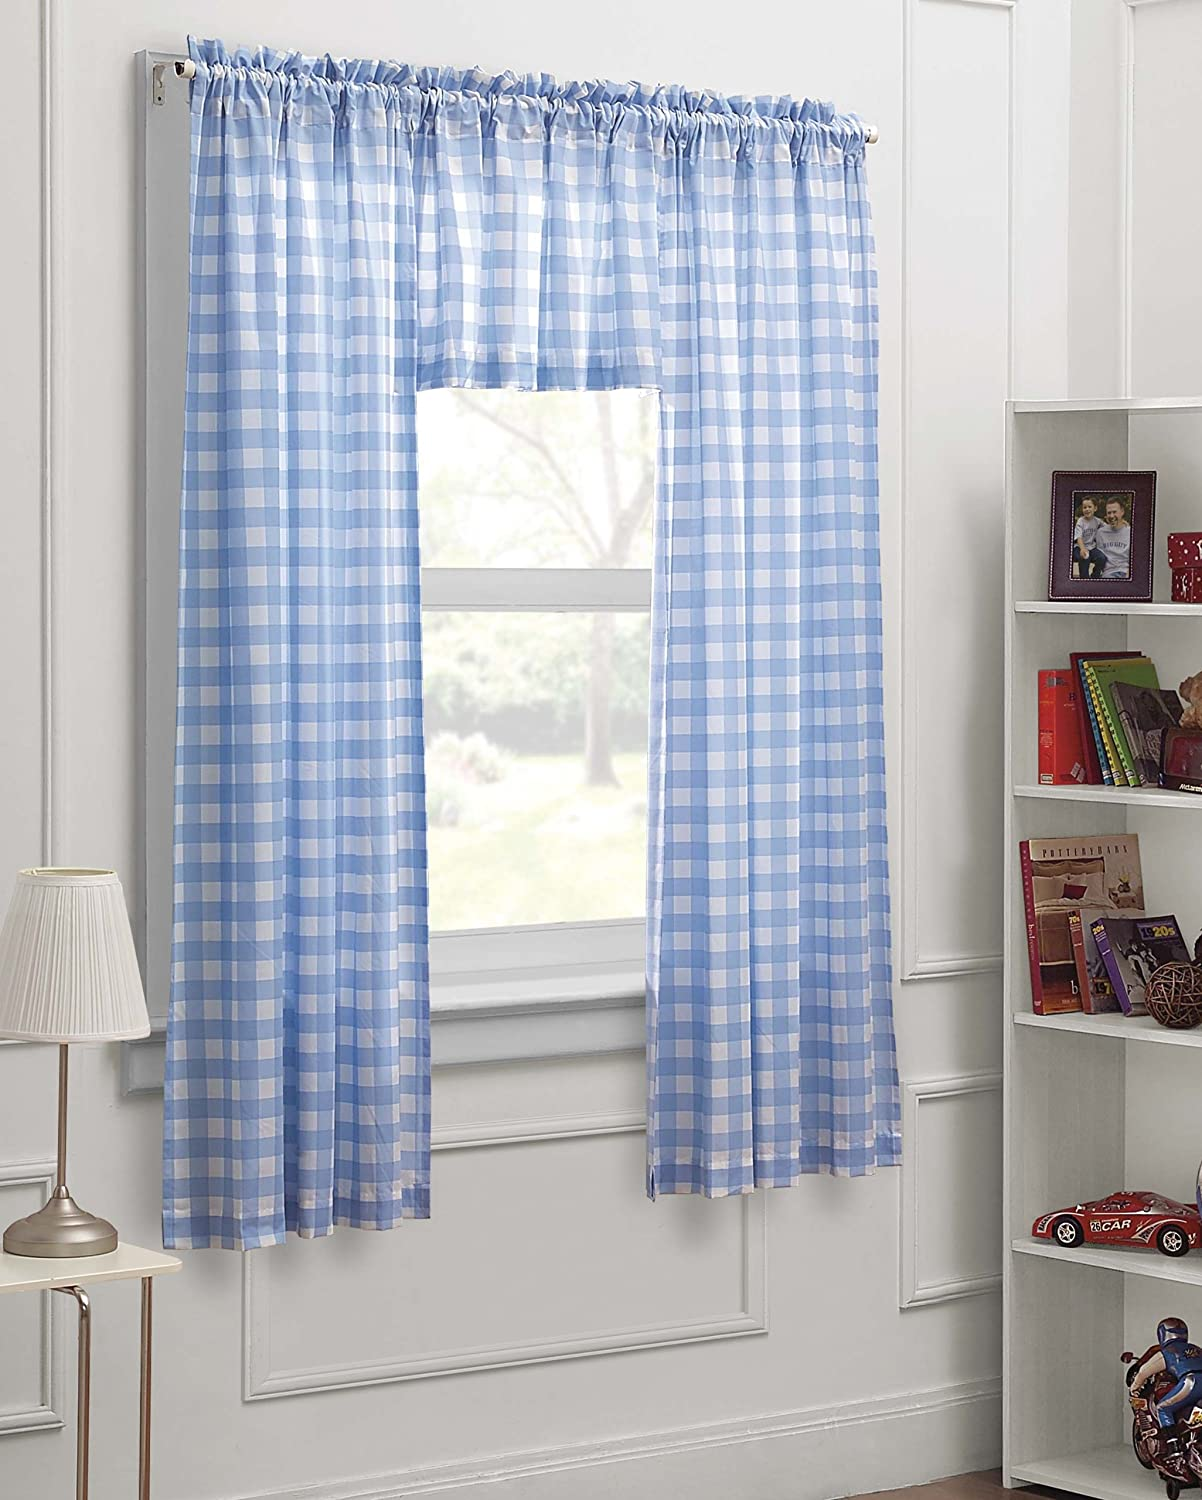 Dream Factory Gingham Check 3-Piece Kids Bedroom Curtain Panel Set, Blue White